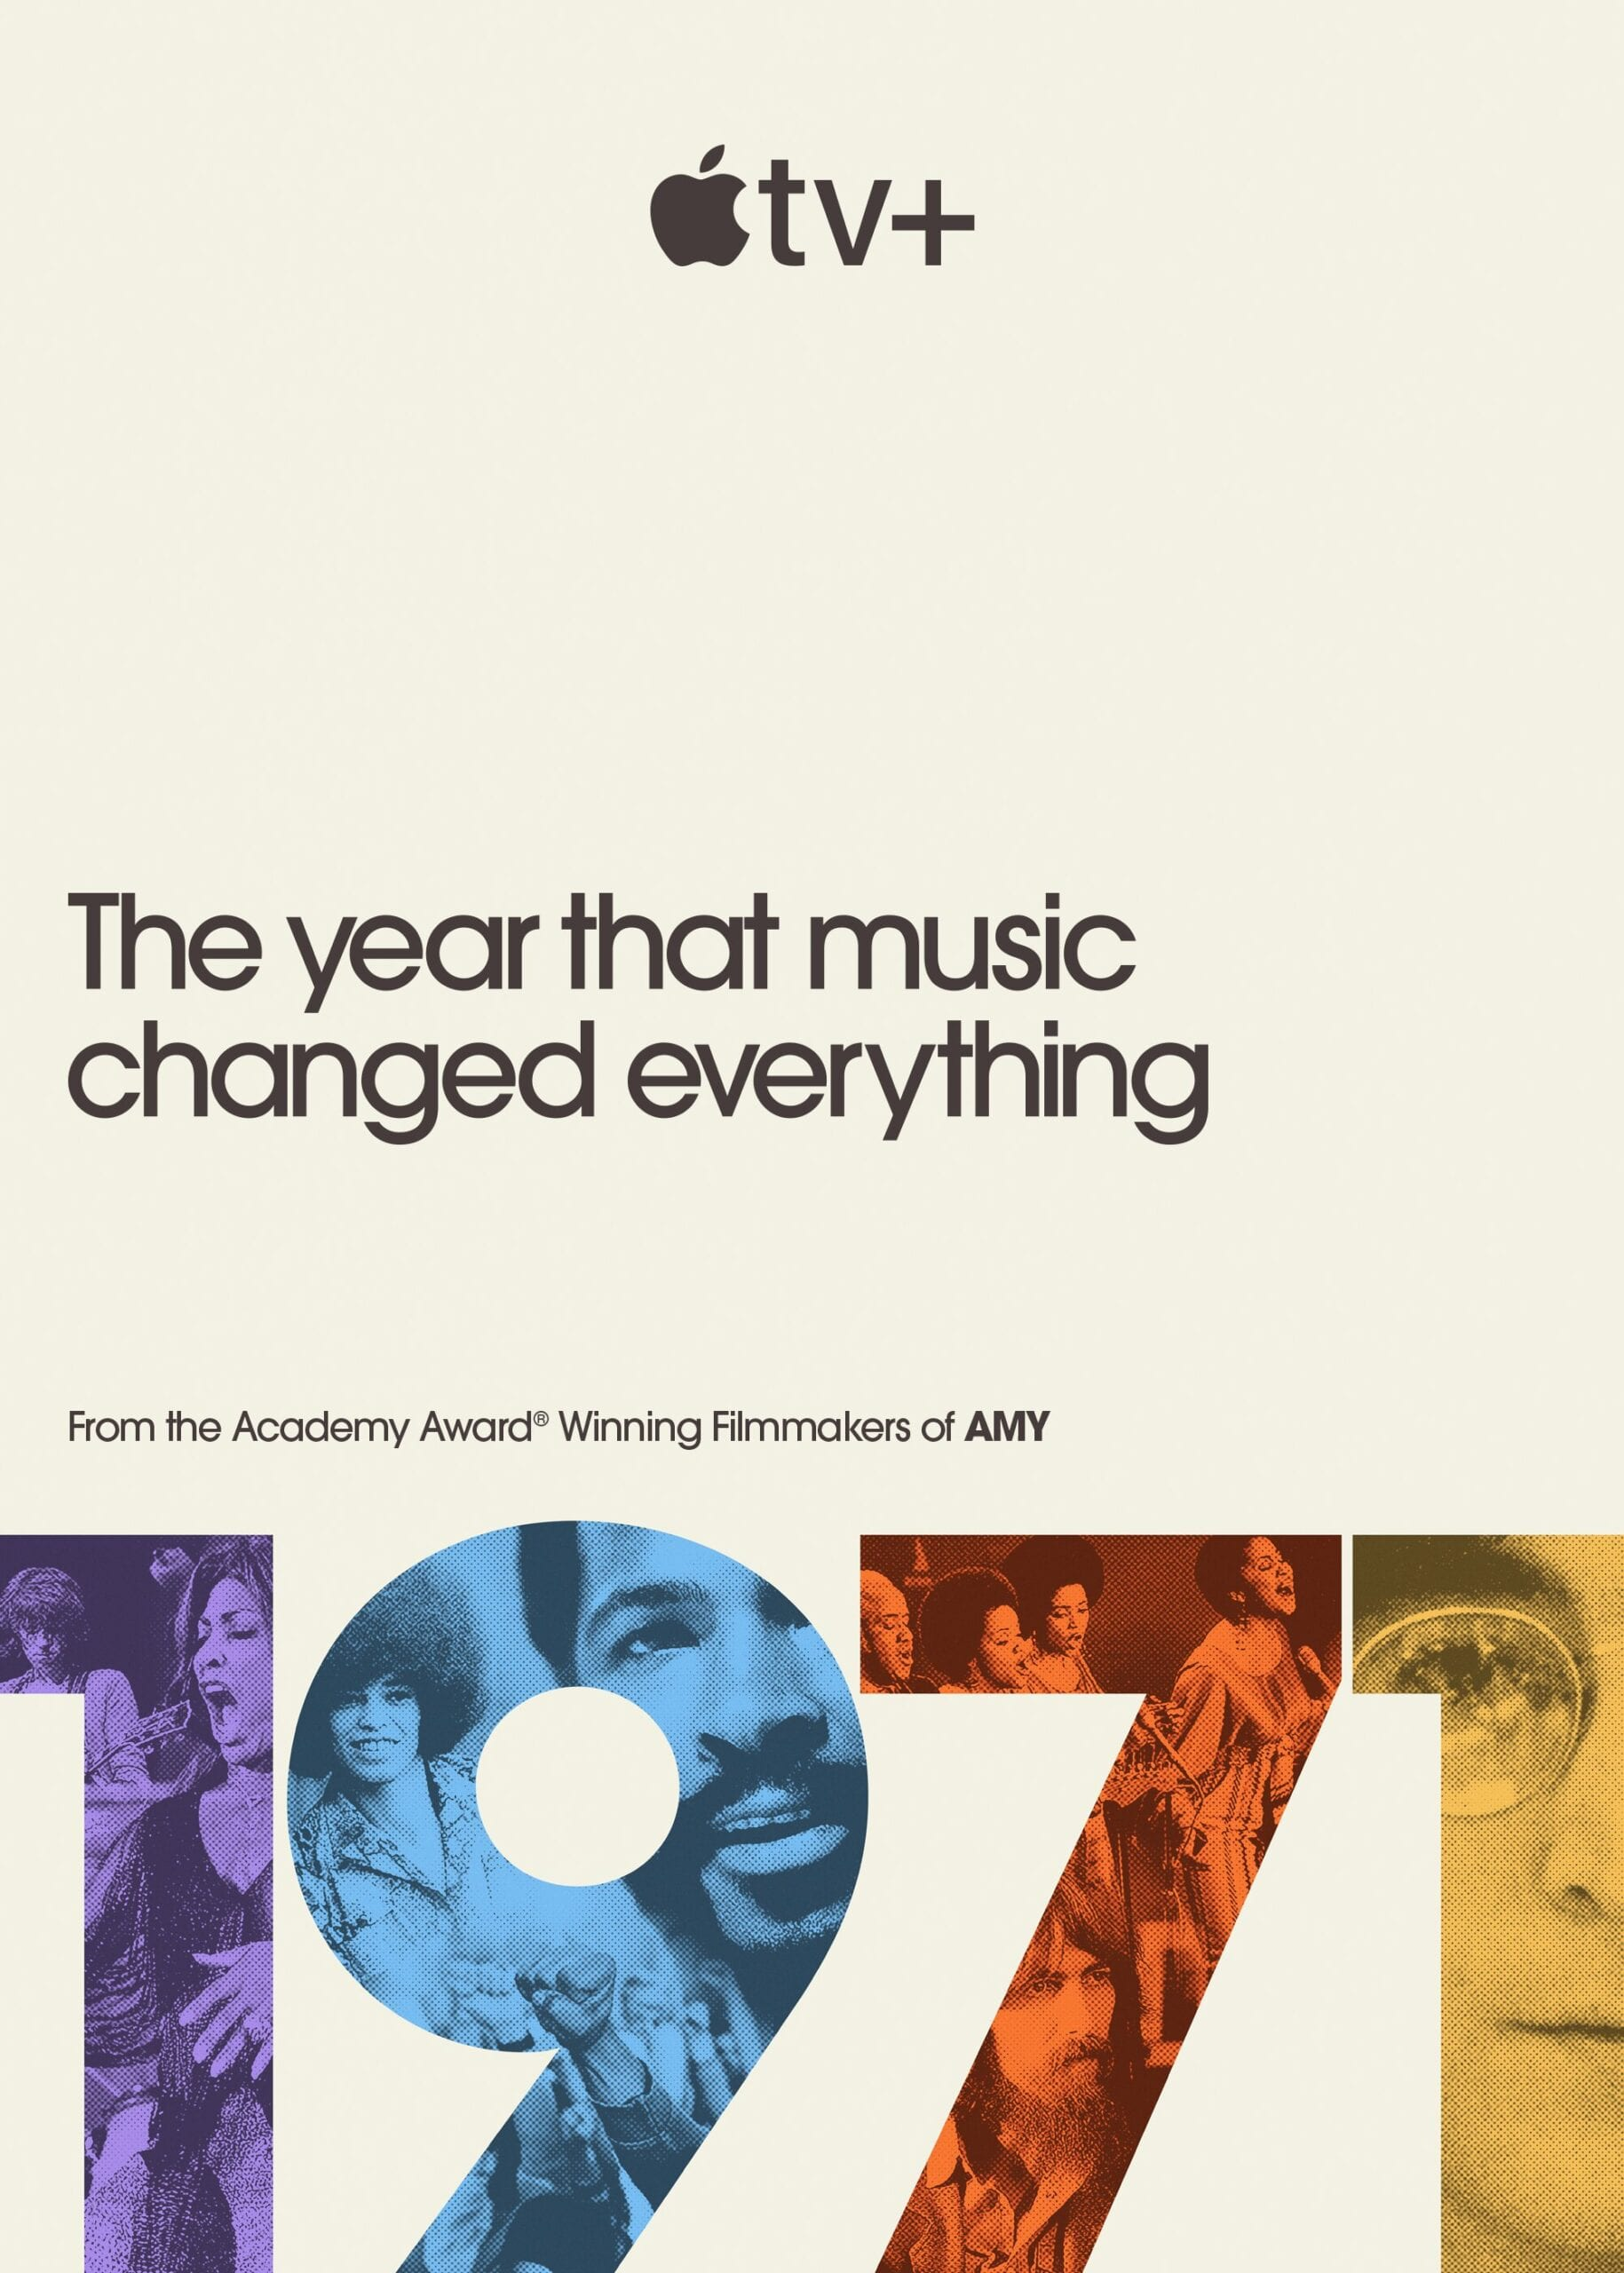 1971: The Year That Music Changed Everything teaser image